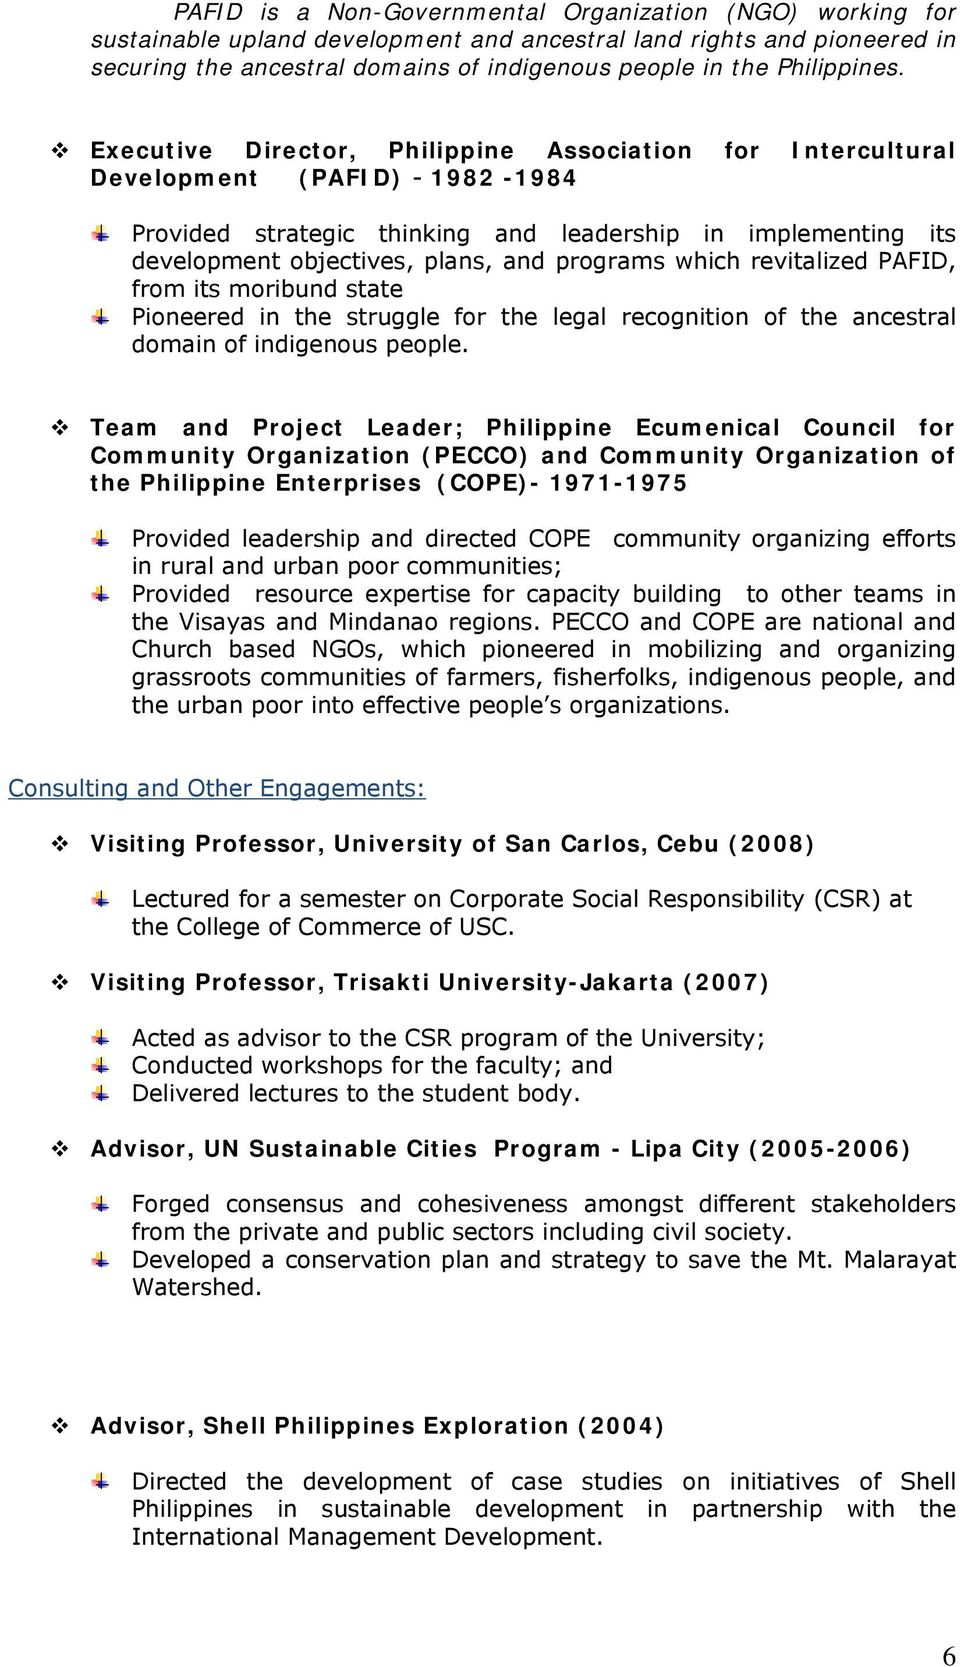 Executive Director, Philippine Association for Intercultural Development (PAFID) - 1982-1984 Provided strategic thinking and leadership in implementing its development objectives, plans, and programs